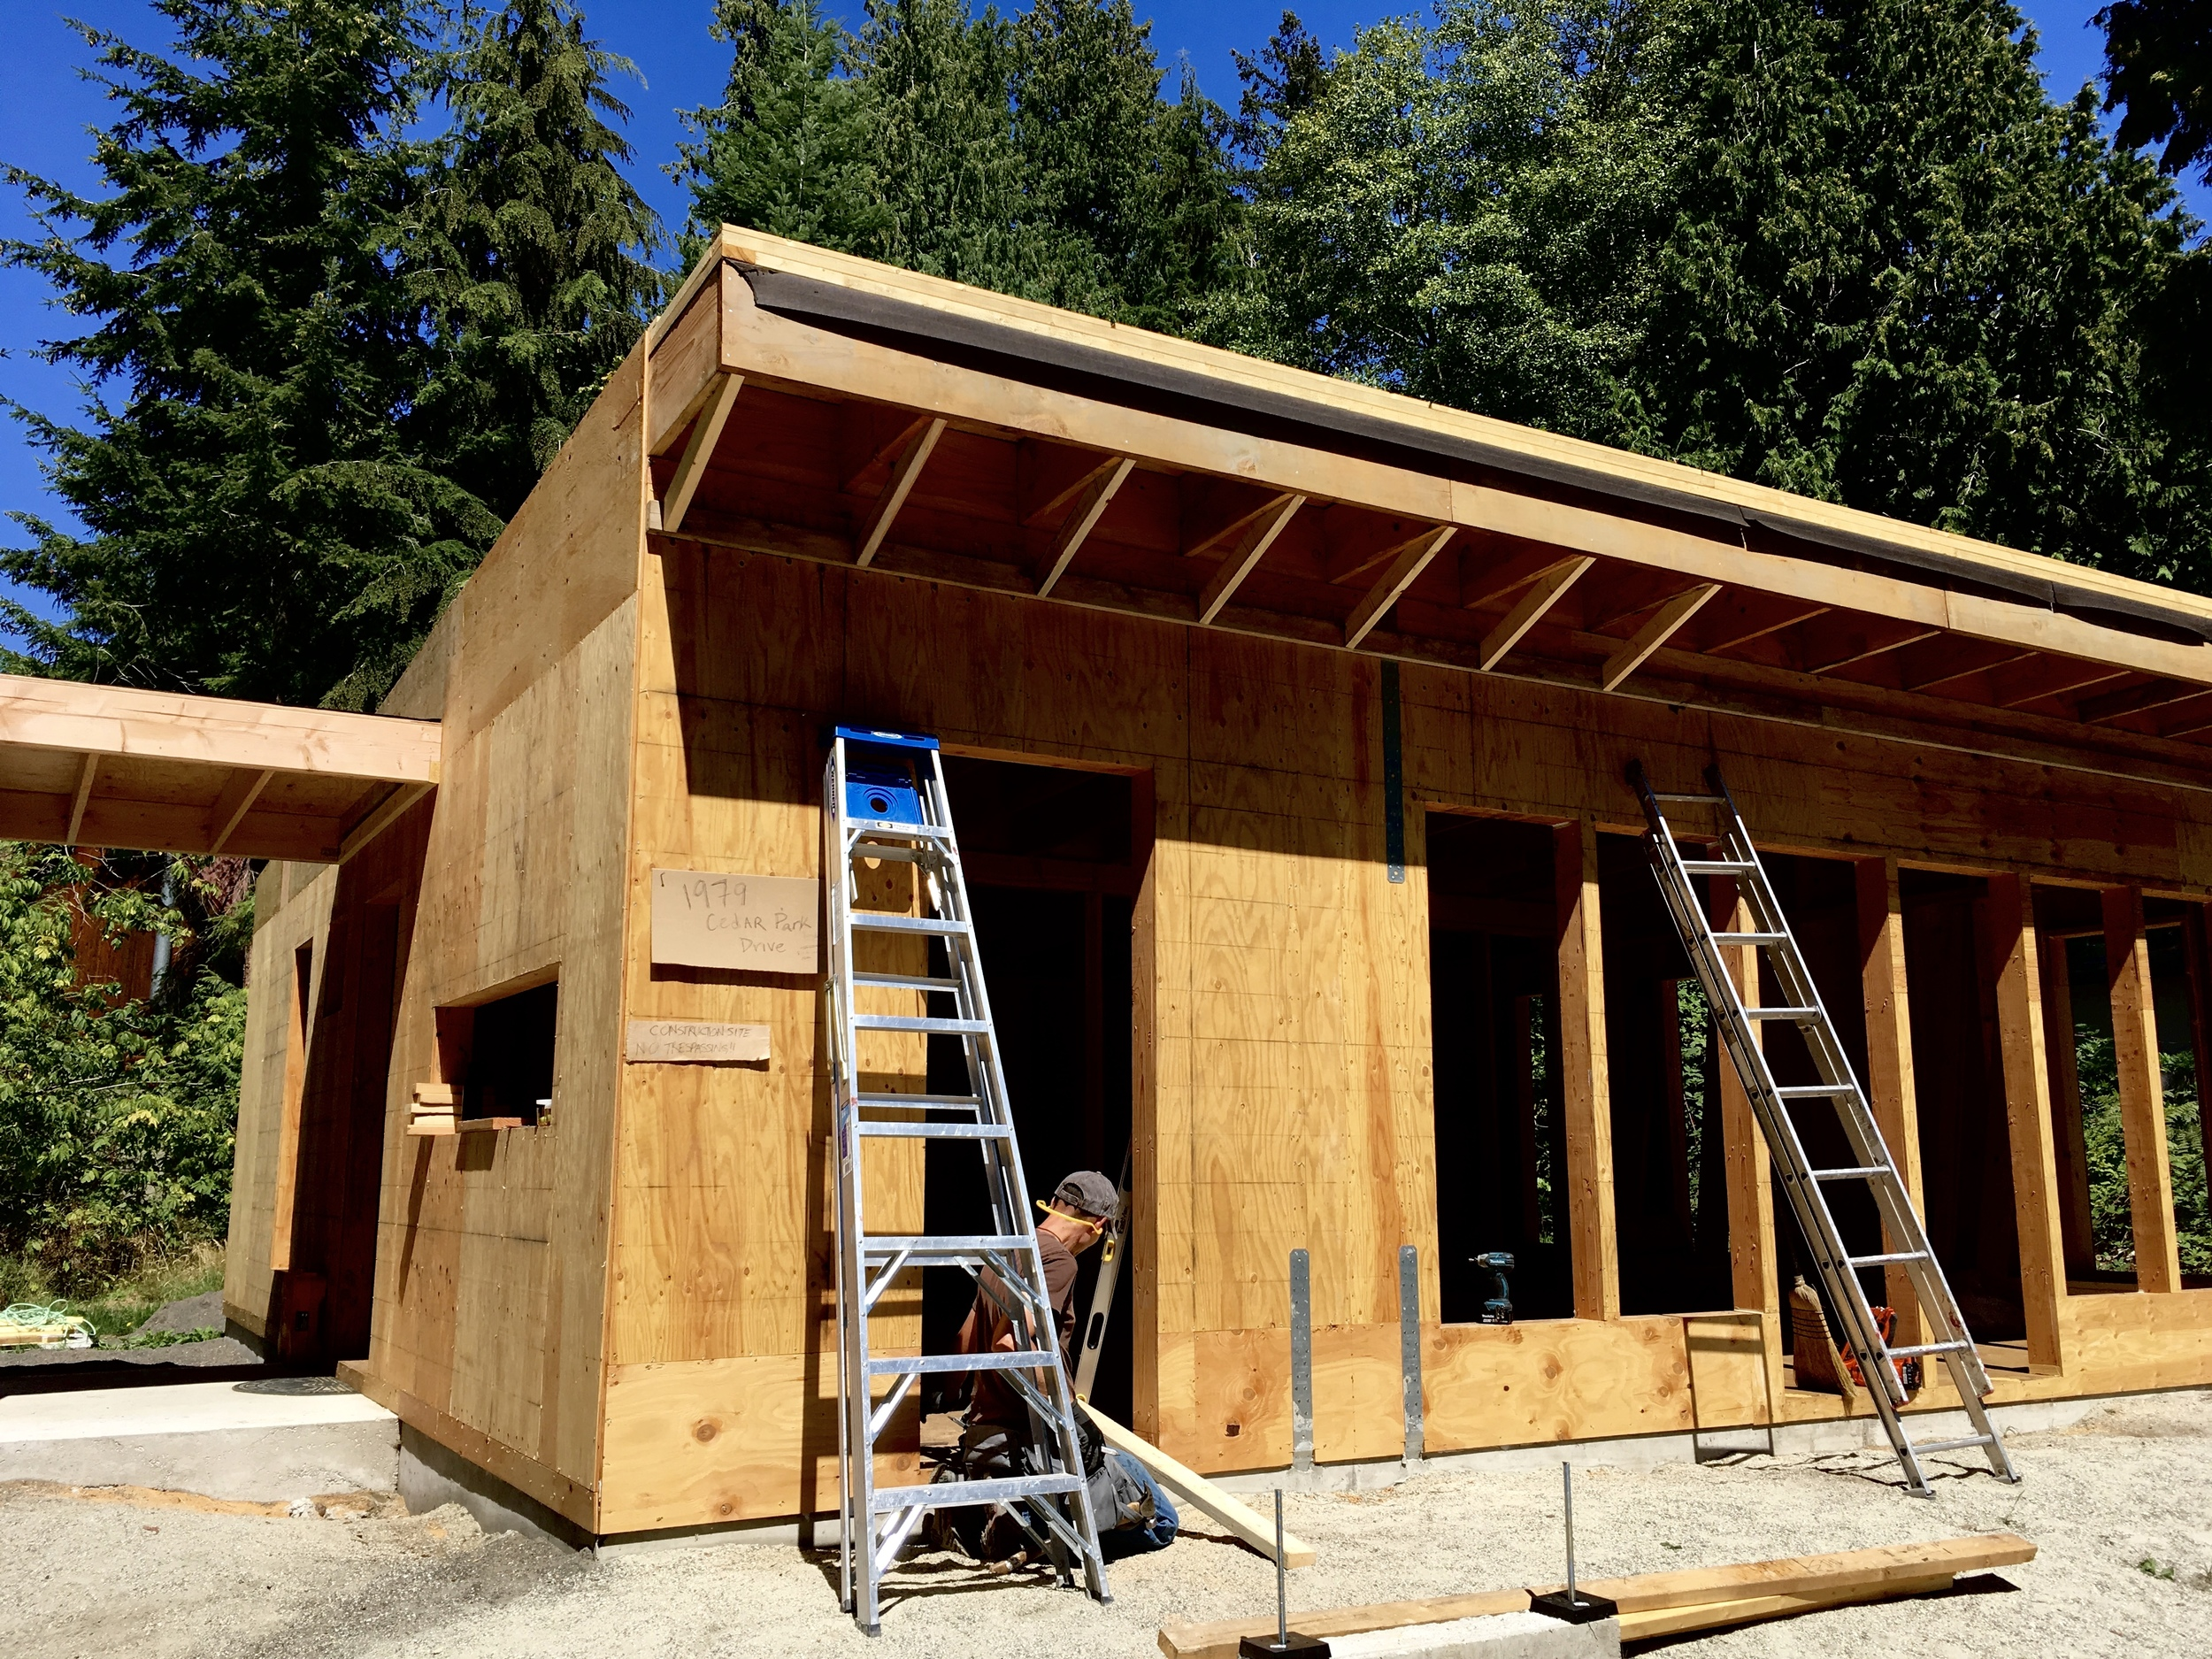 Our front facing soffit is deep for lighting and audio speakers (music for gardening). We used leftover 2x4 material for the framing. We've virtually no wood waste on the project.